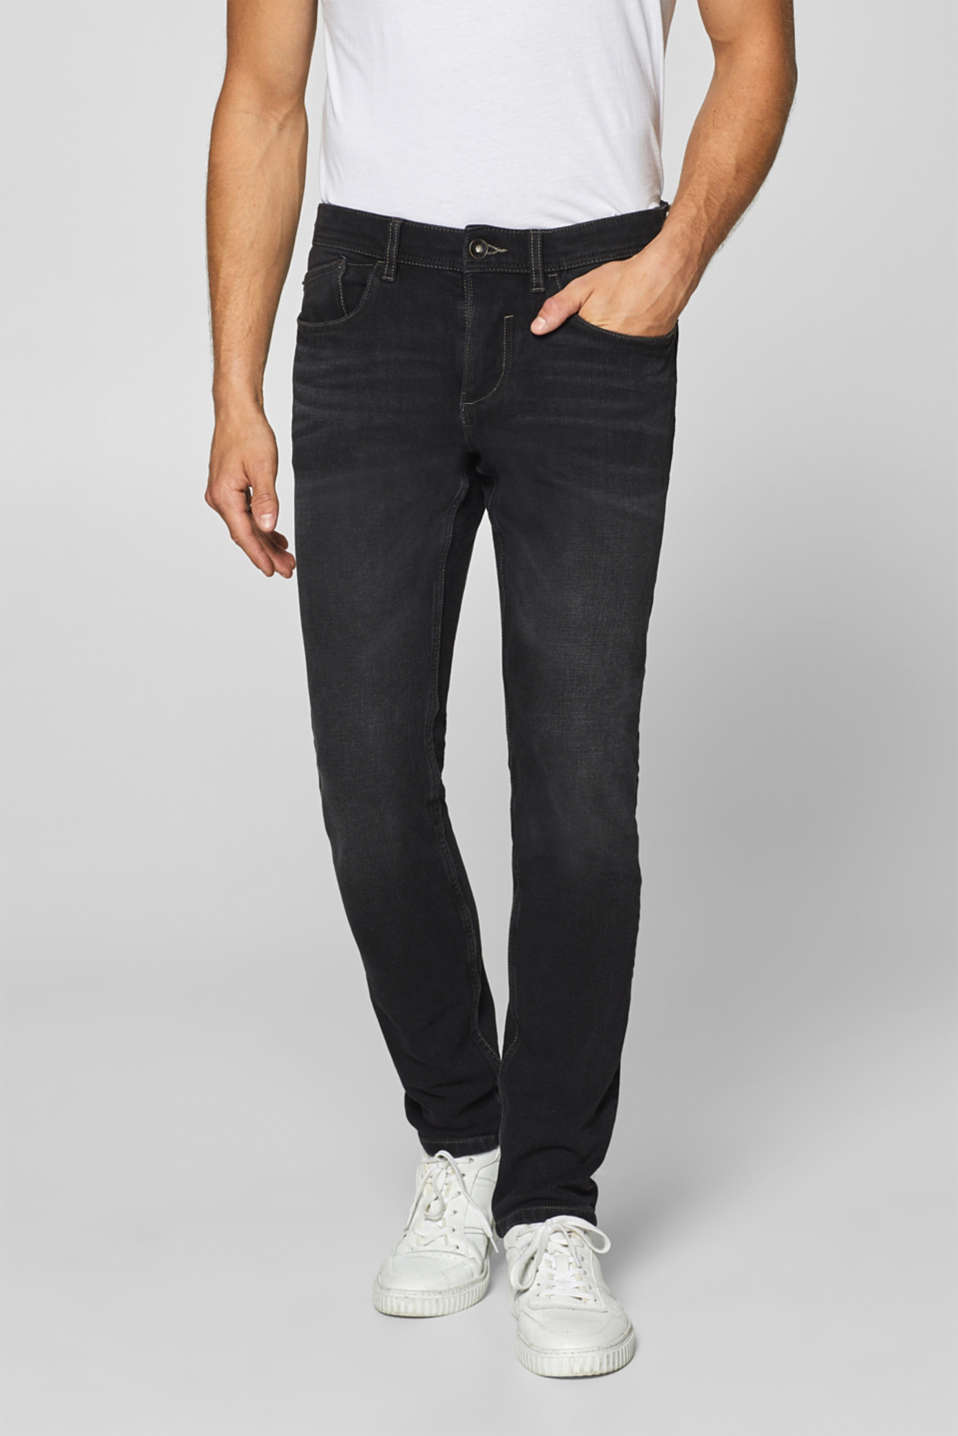 Esprit - Two-way stretch jeans in a garment wash